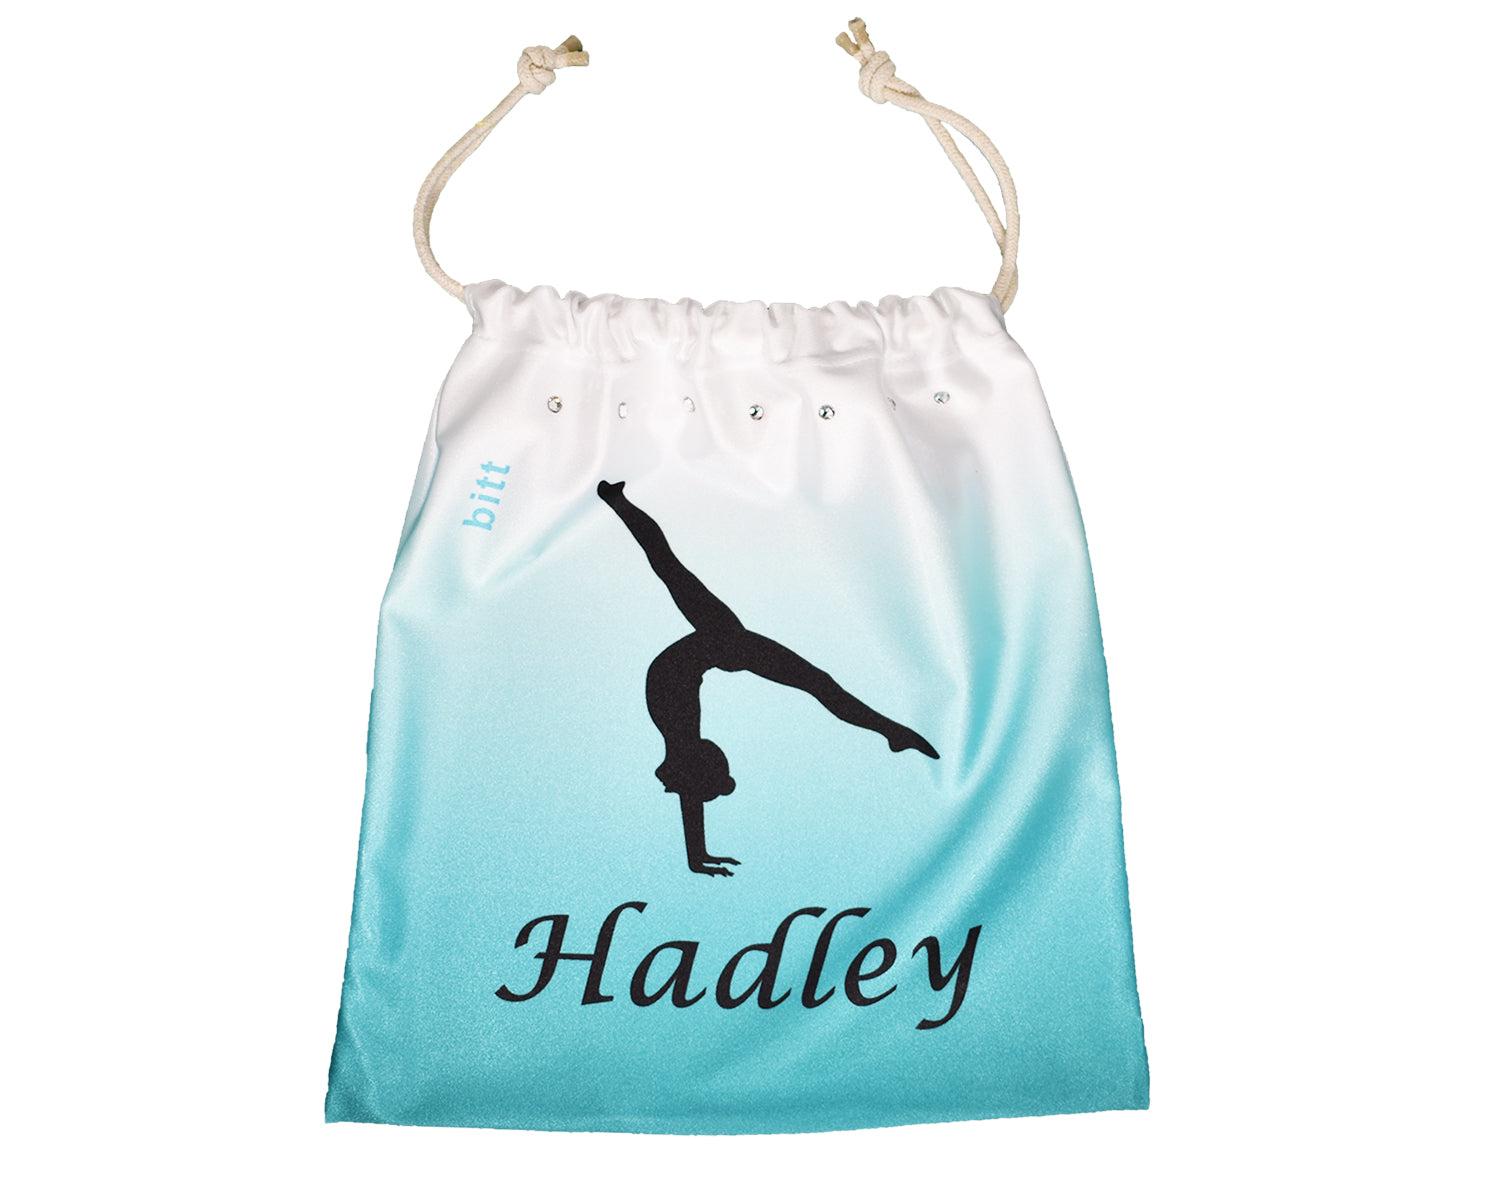 Personalized Grip Bag Teal Ombre with Gymnastics Handstand